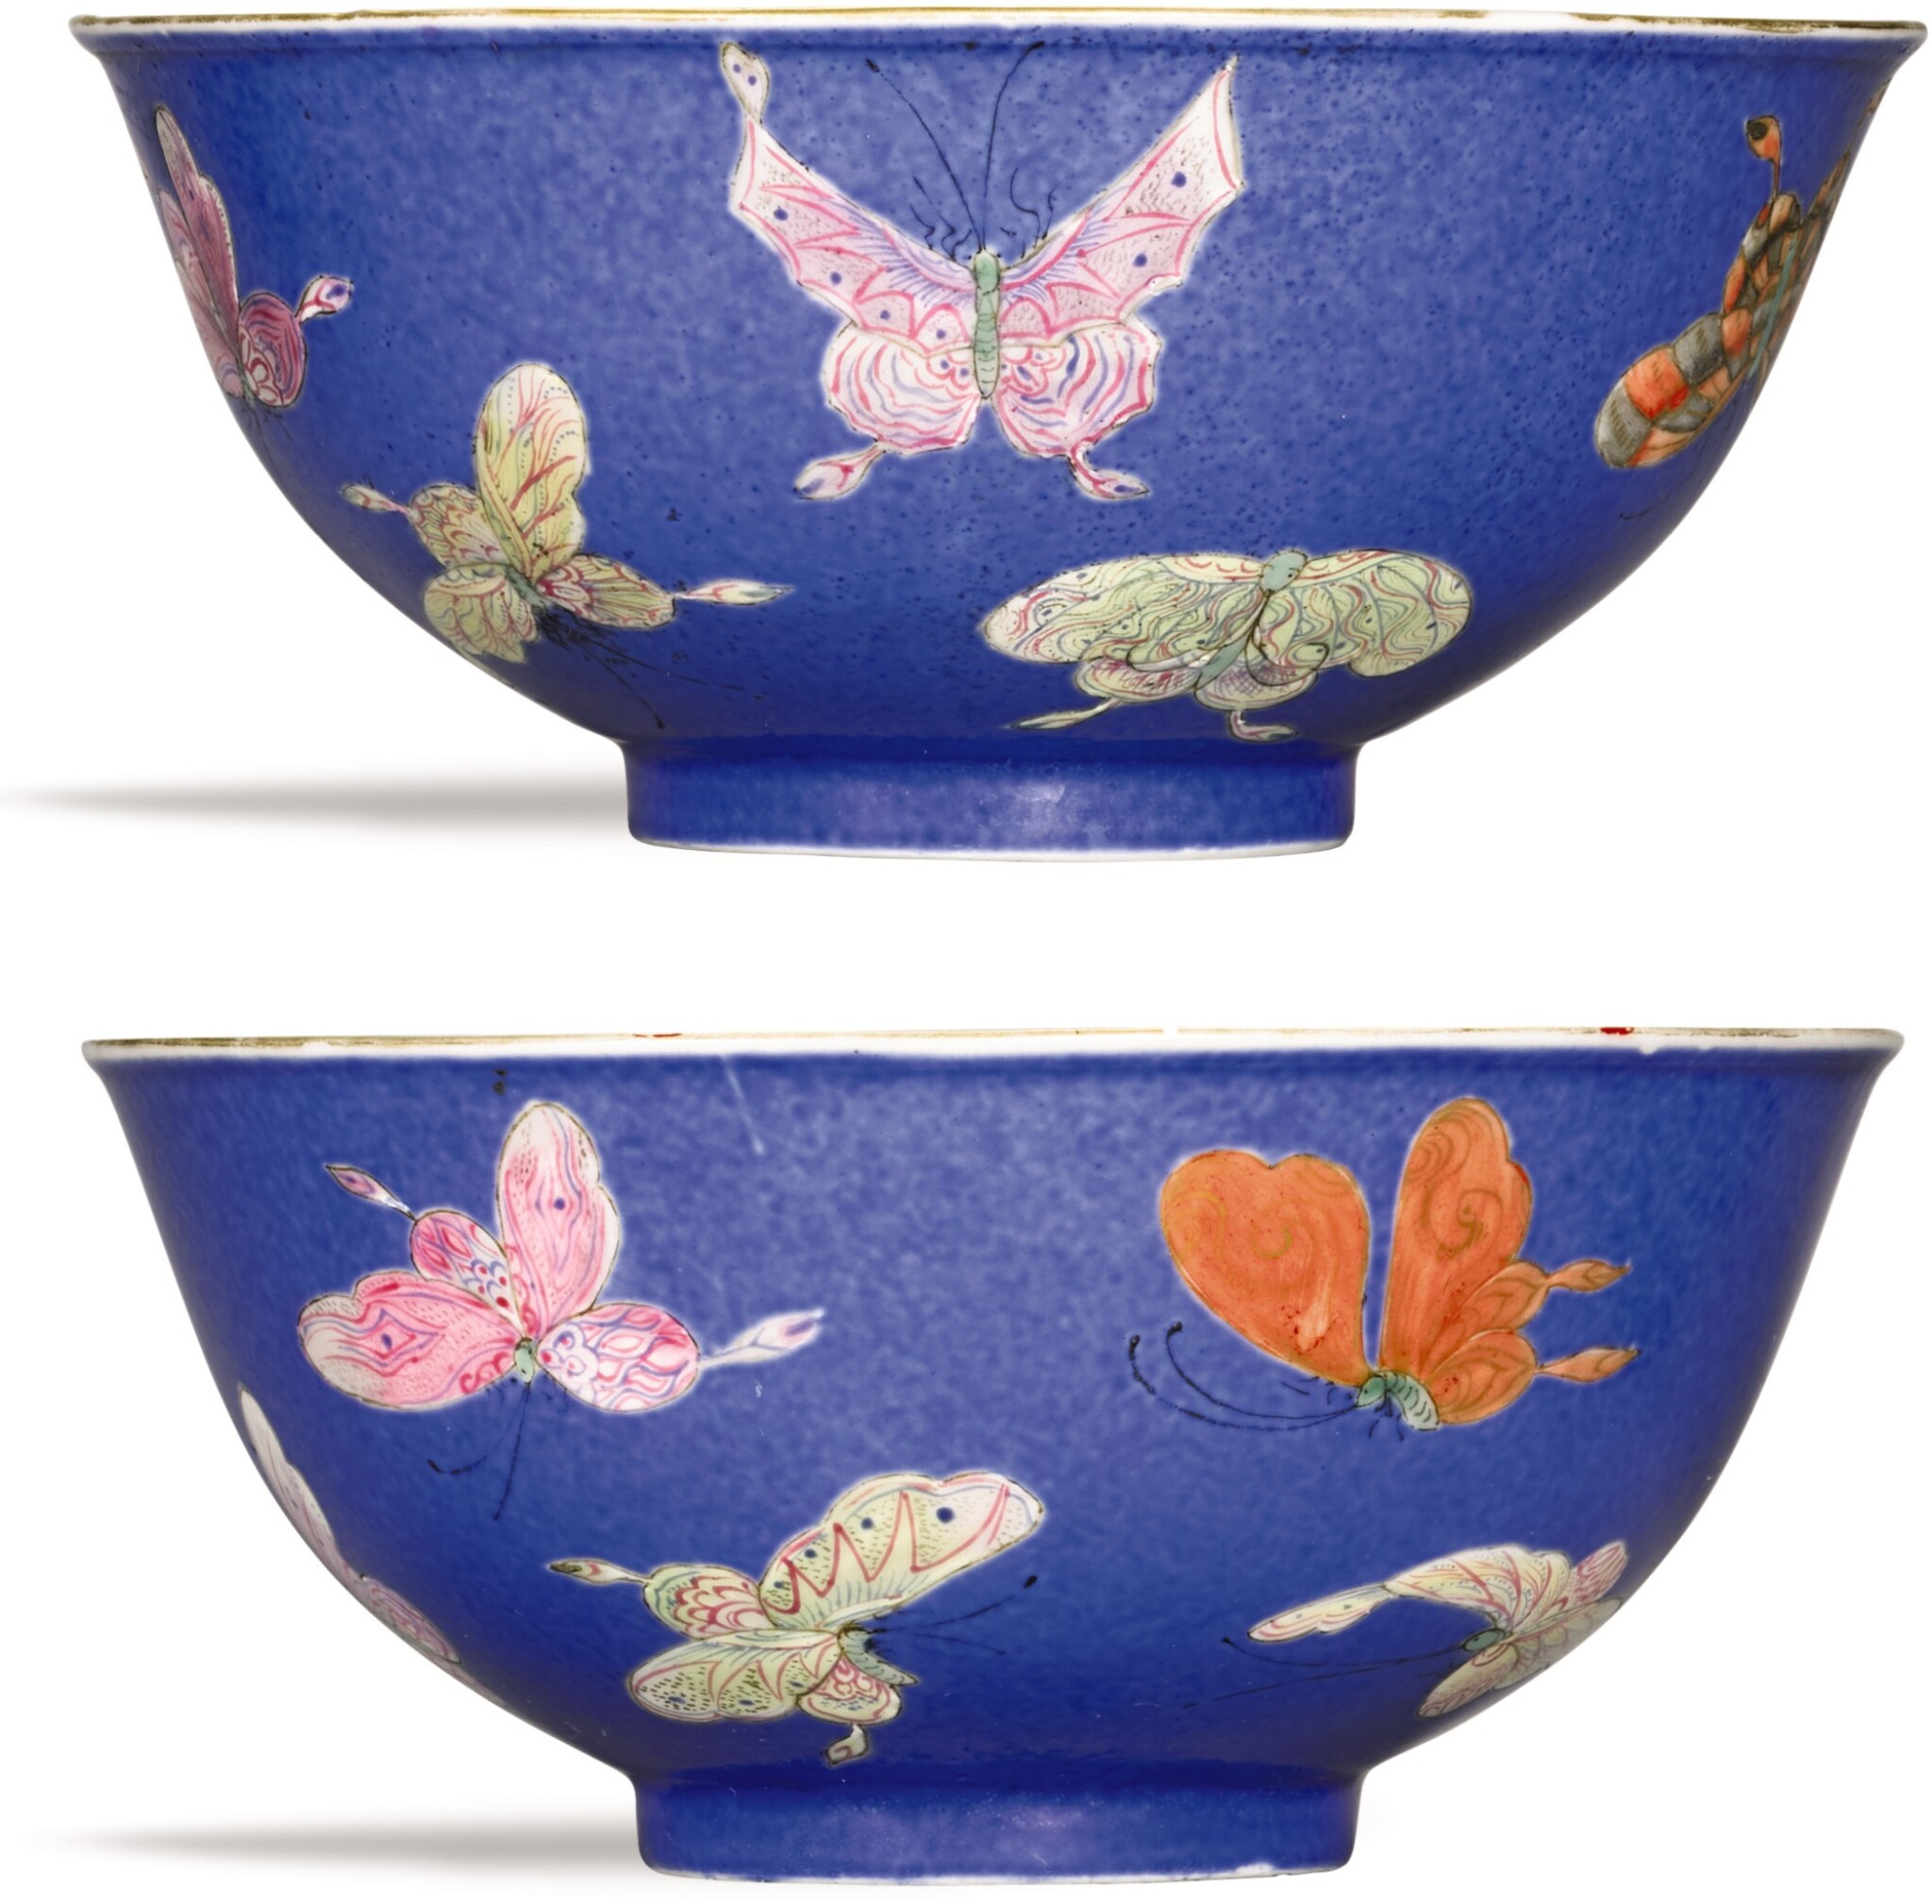 View 1 of Lot 338. A PAIR OF POWDER-BLUE GROUND FAMILLE-ROSE 'BUTTERFLY' BOWLS JIAQING SEAL MARKS AND PERIOD   清嘉慶 藍地粉彩百蝶紋盌一對 《大清嘉慶年製》款.